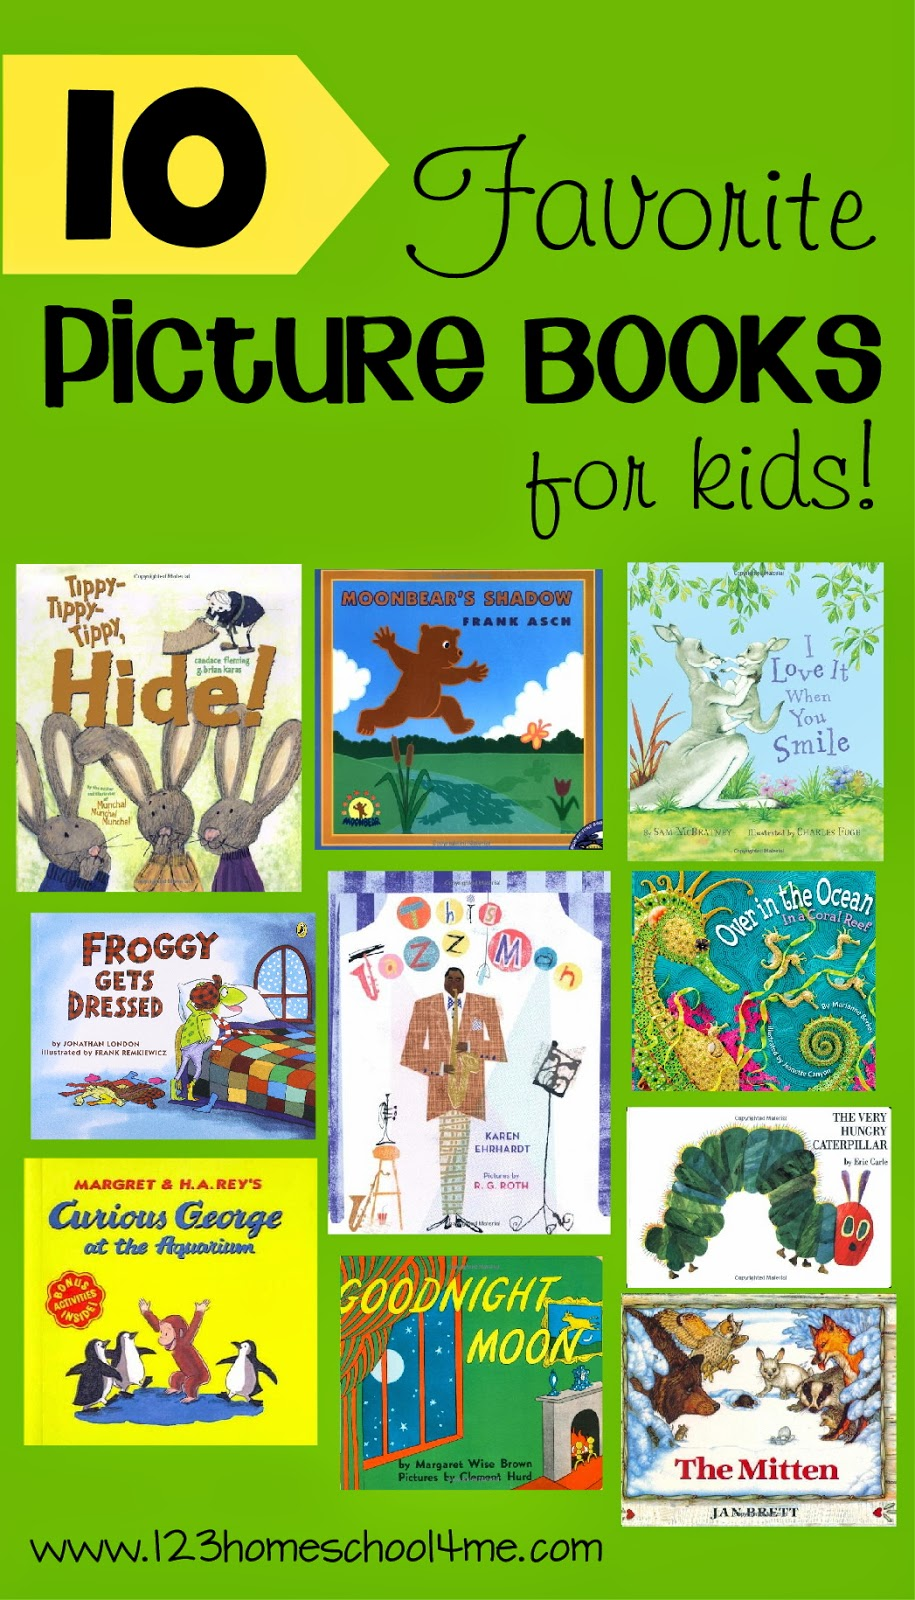 10 Favorite Picture Books for Kids #preschool #kindergarten #bookrecommendations